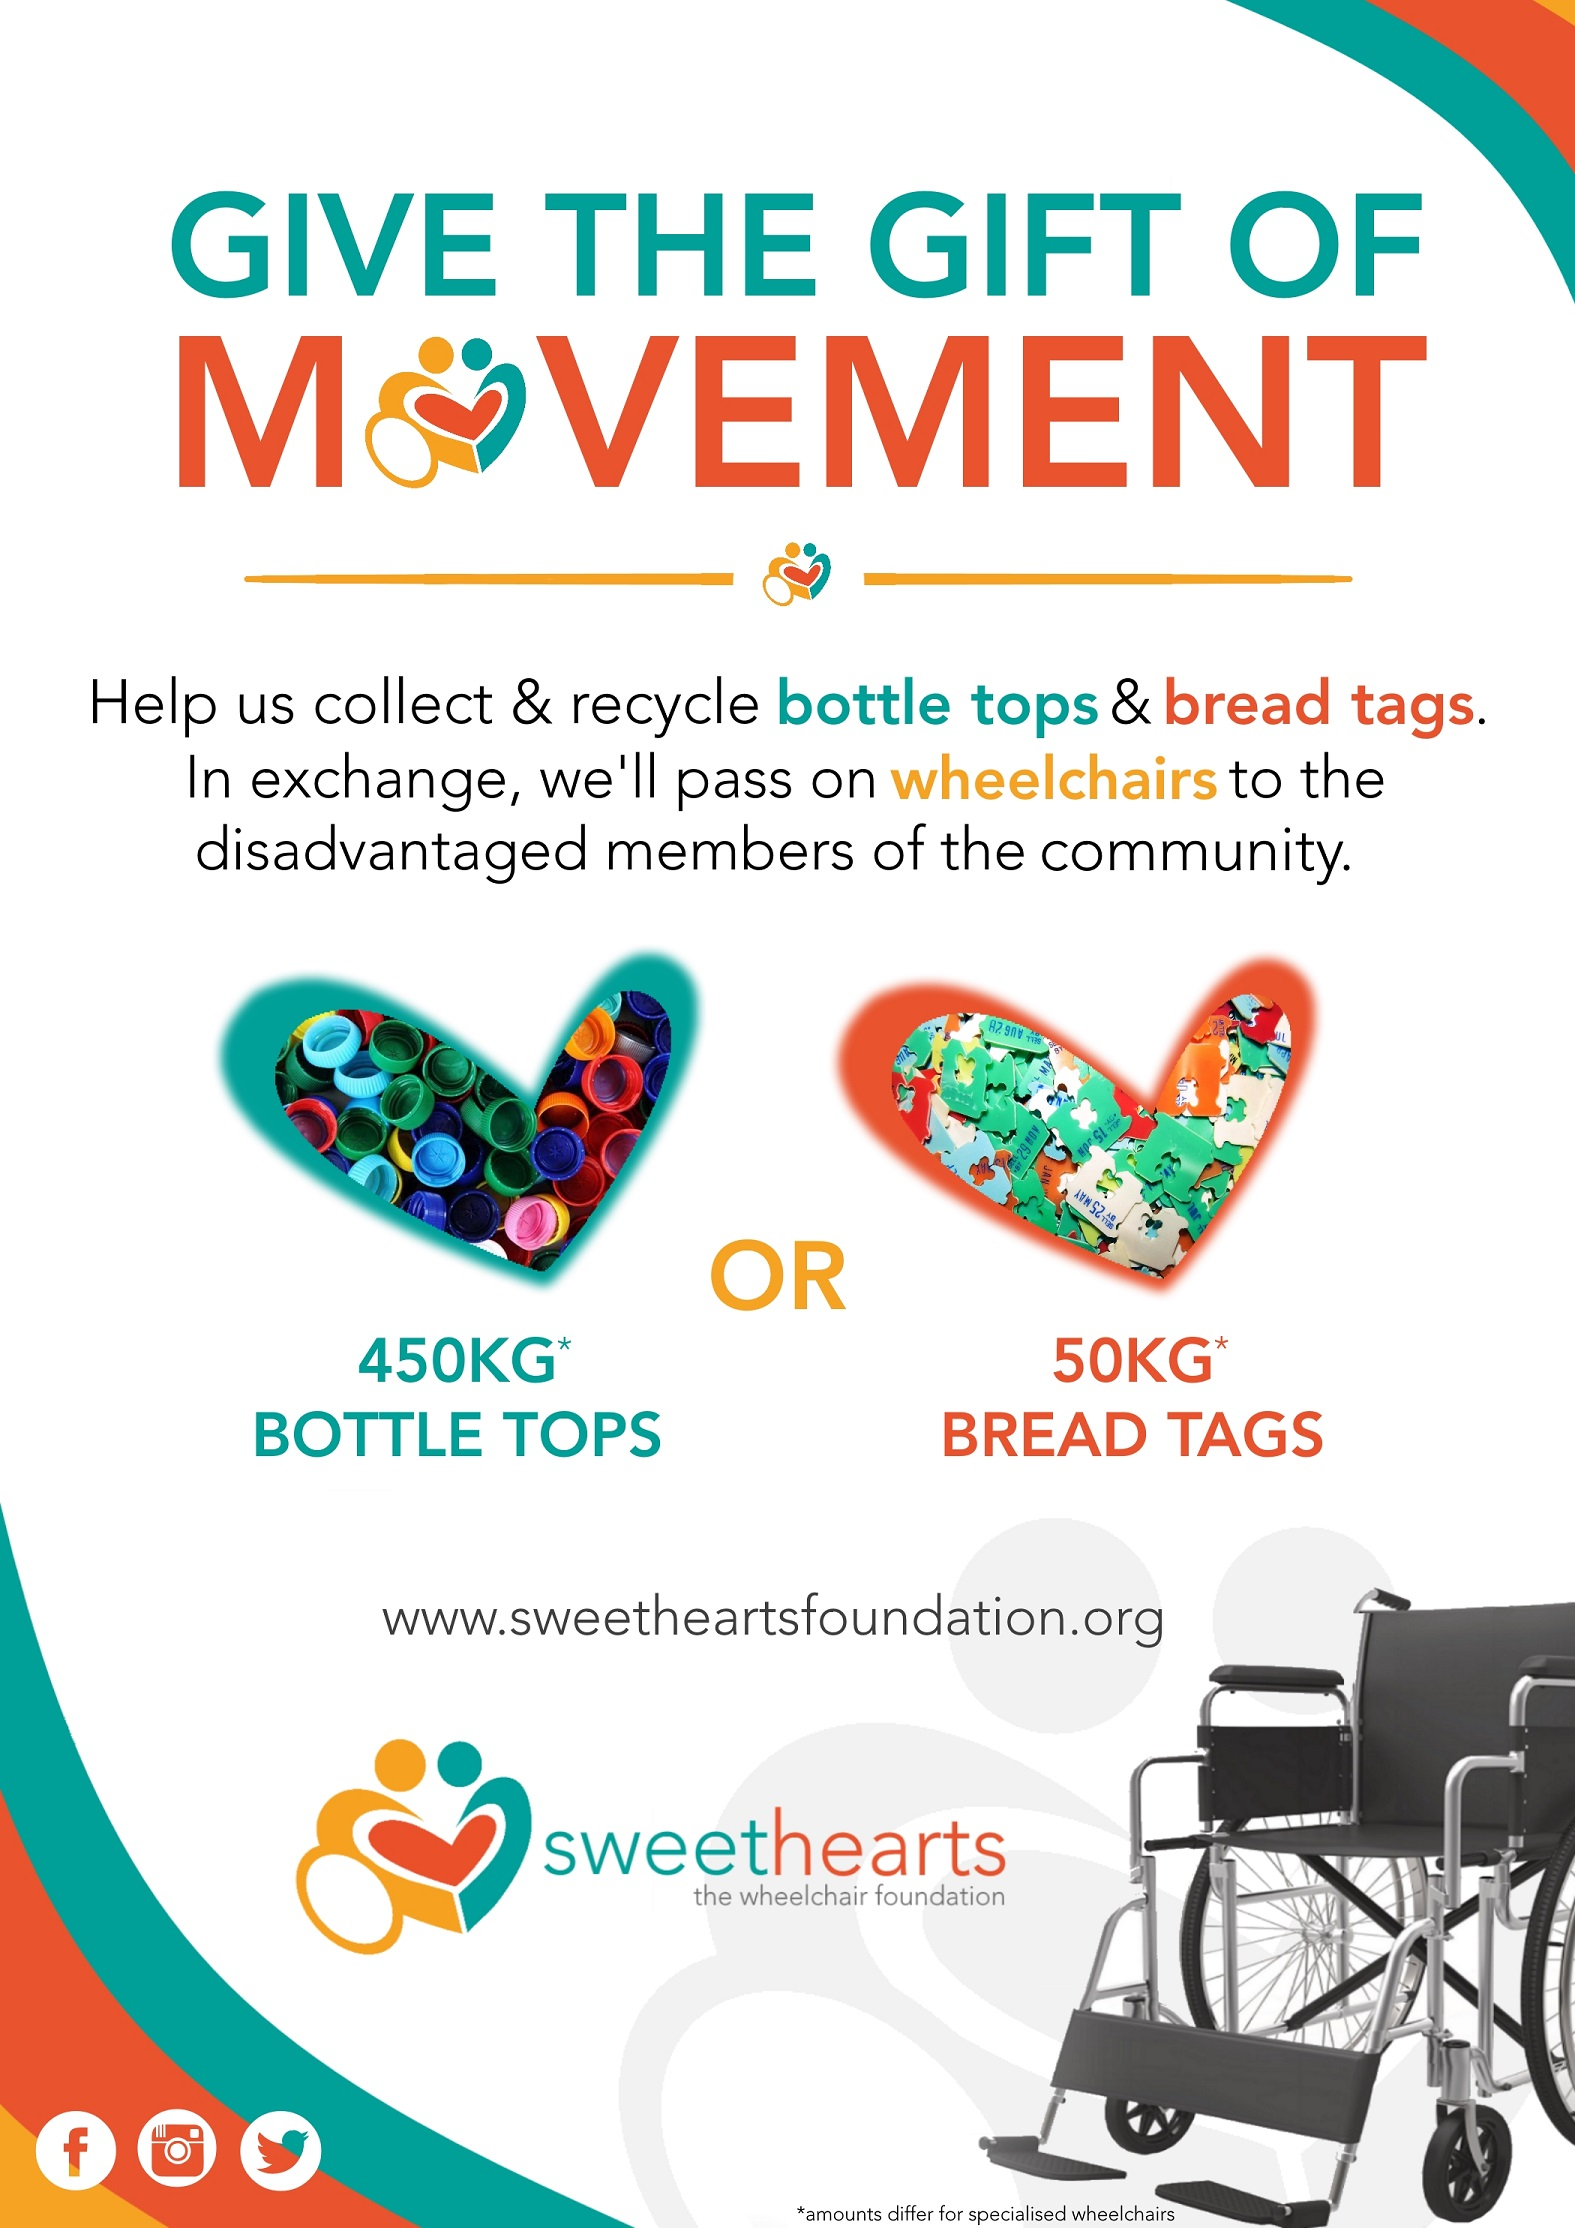 Your Help The Sweethearts Foundation